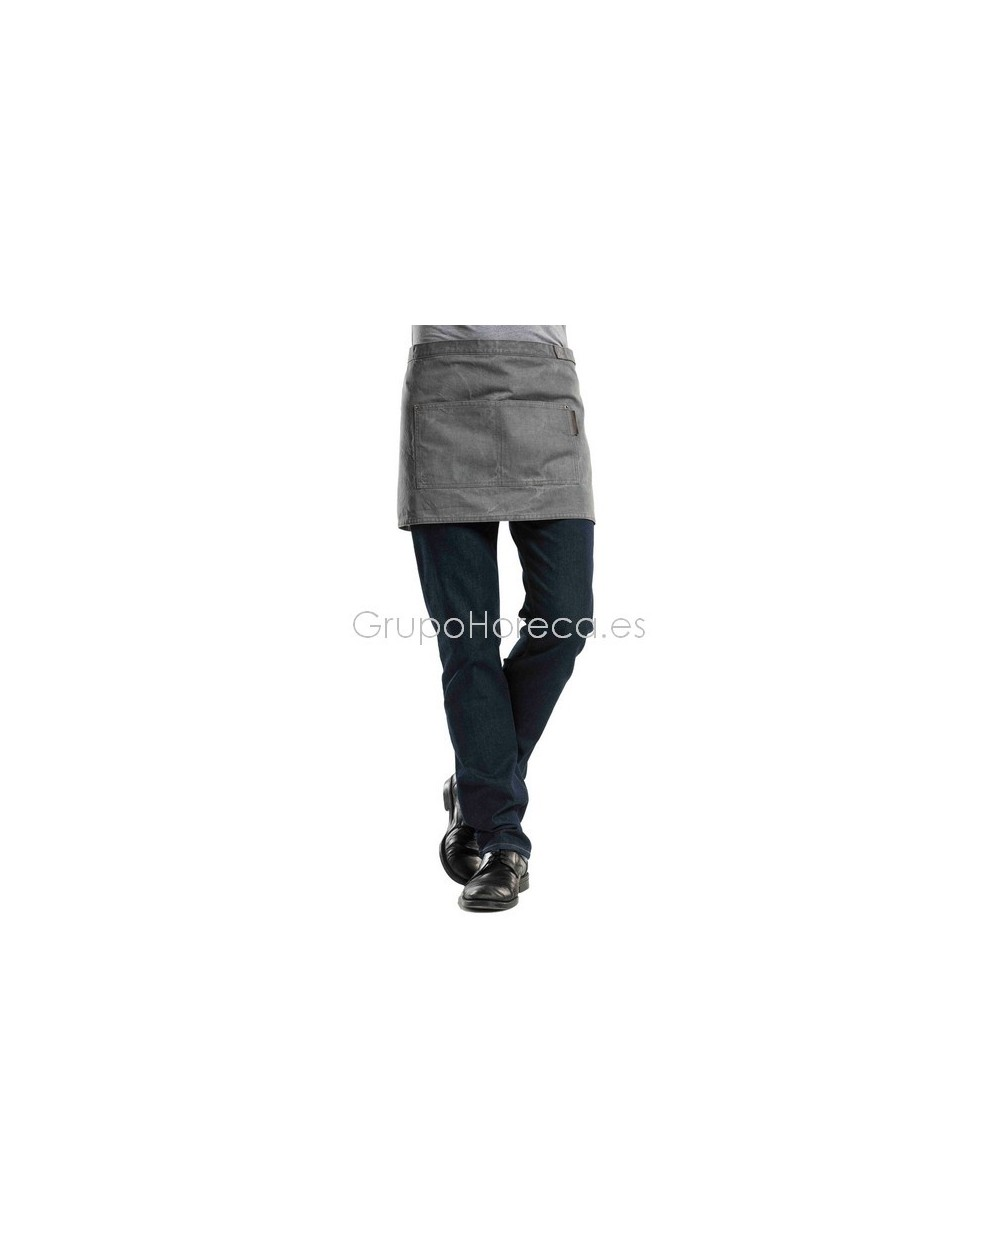 Delantal sin Peto Grey Denim 2 Bolsillos Chaund Devant